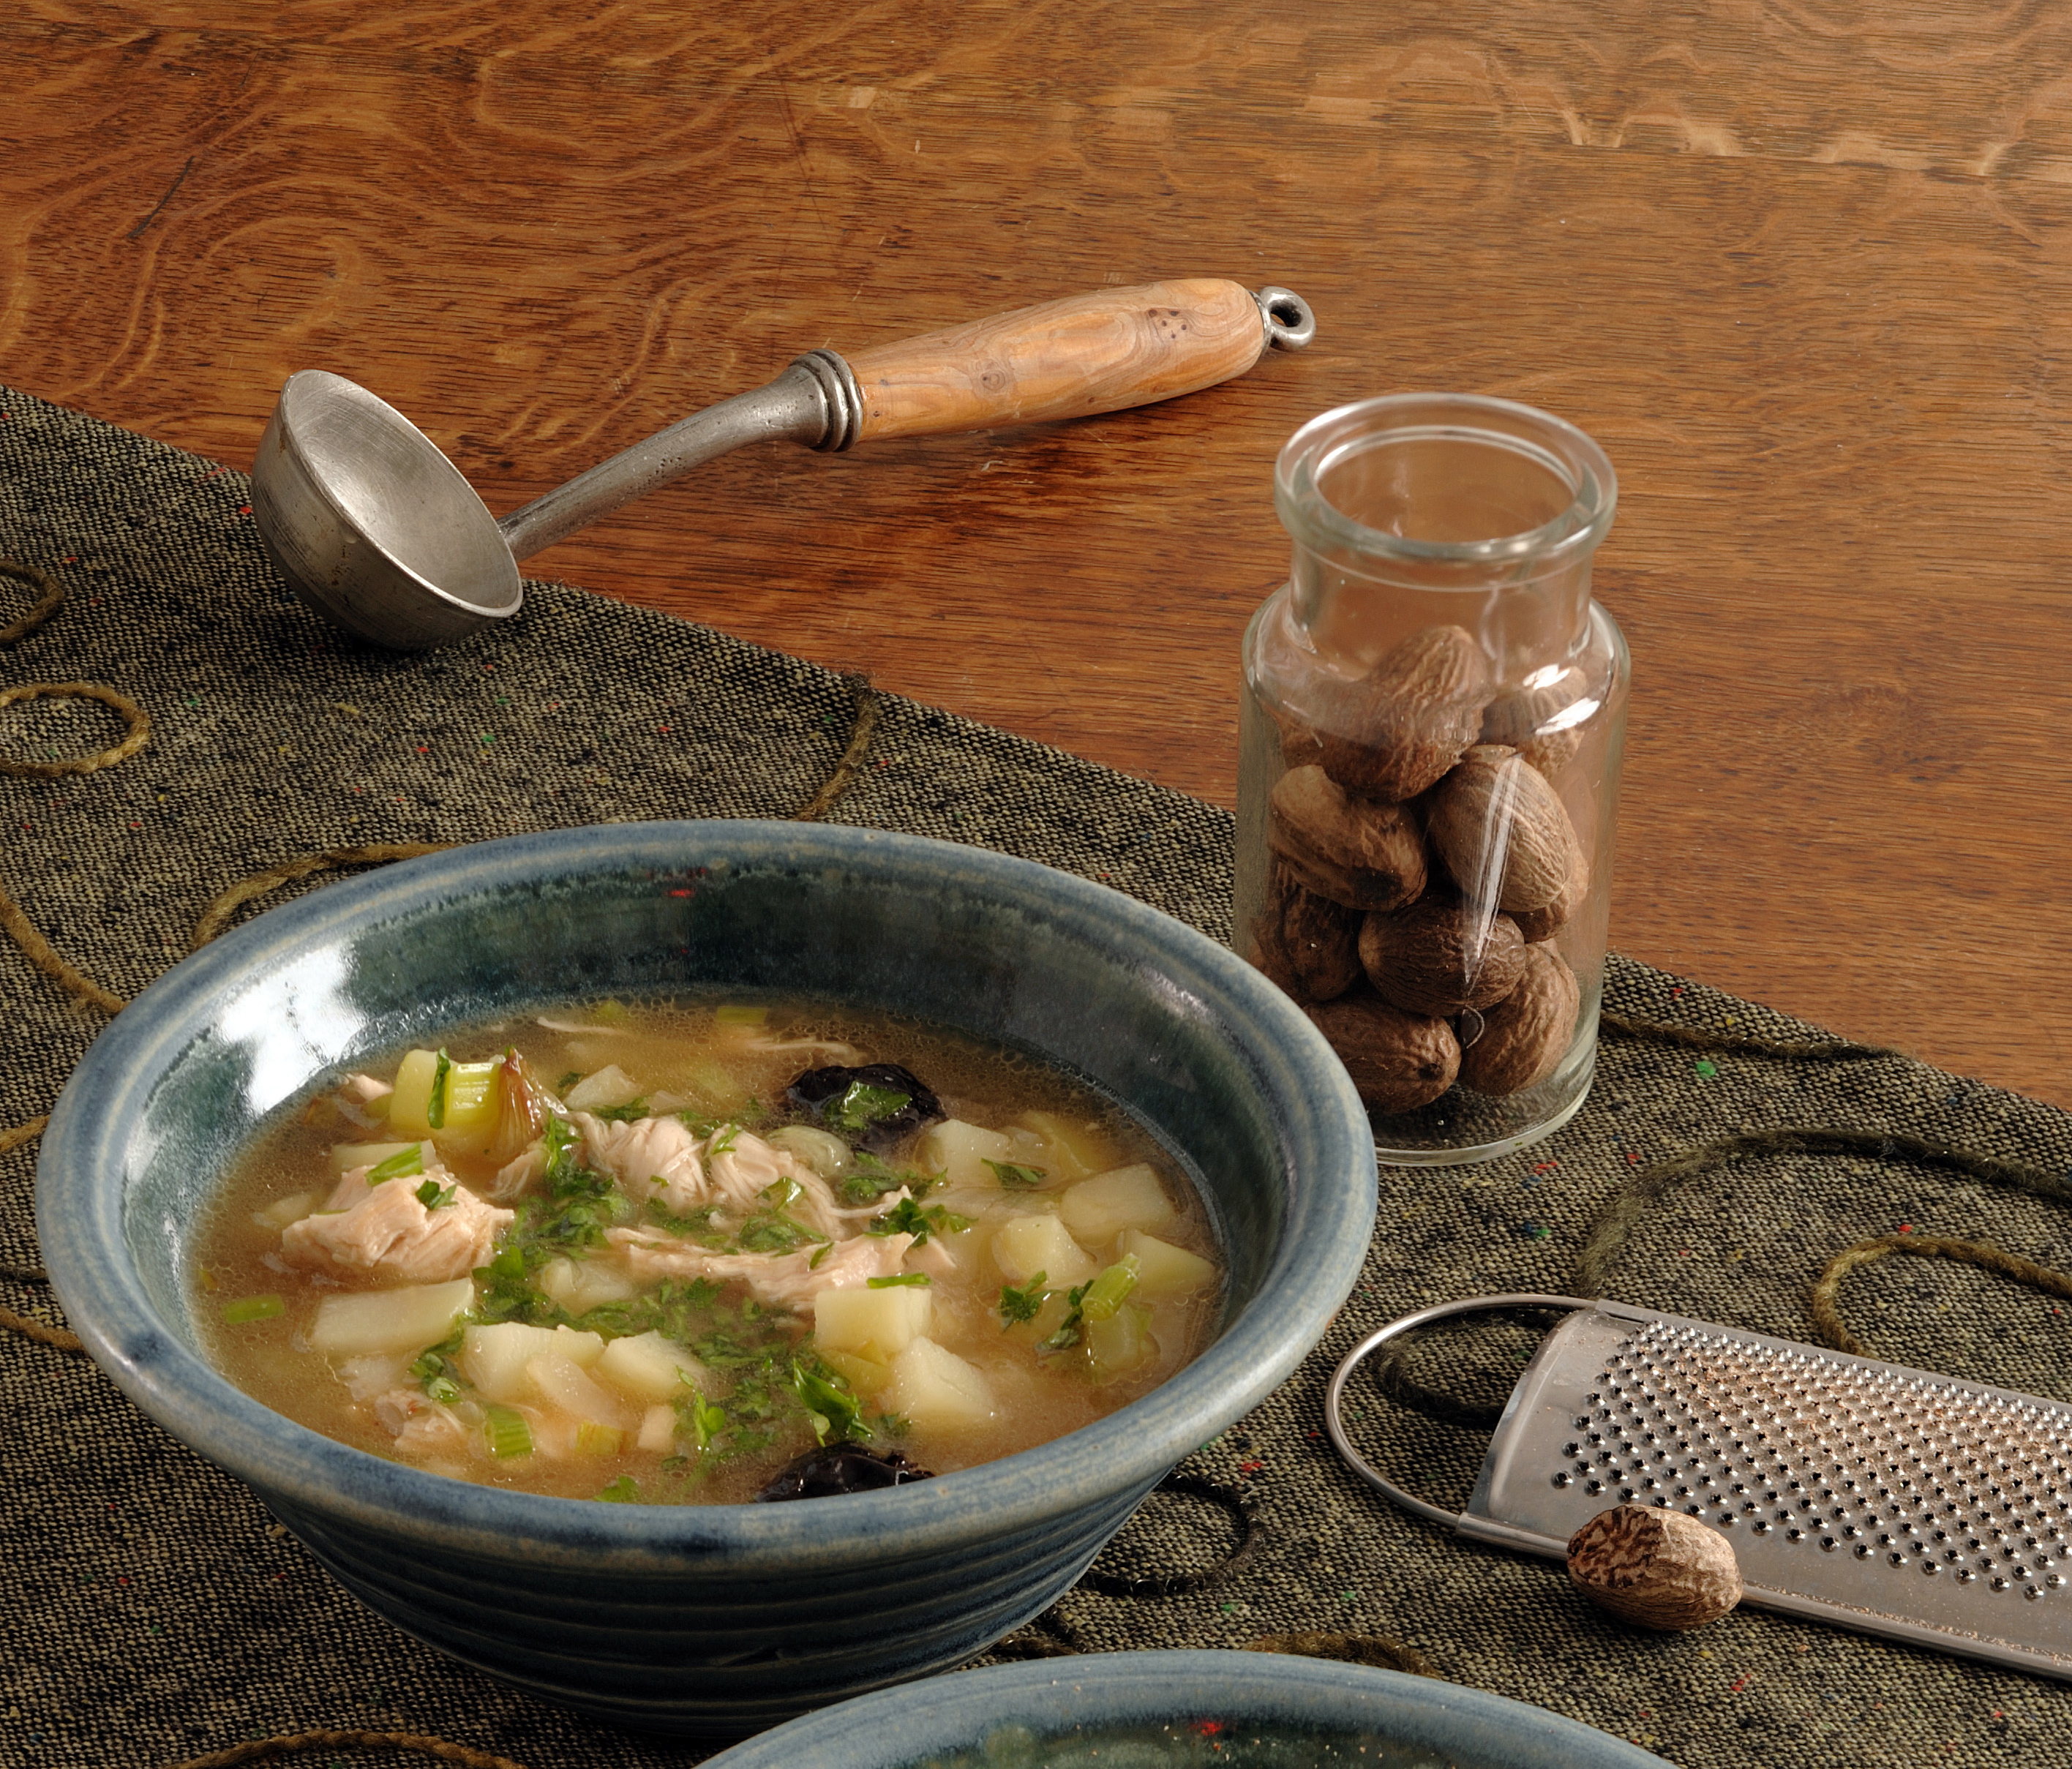 Cock-a-leekie soup and other Scottish recipies will be demonstrated by Wendy Barrie at Burns Unbound!